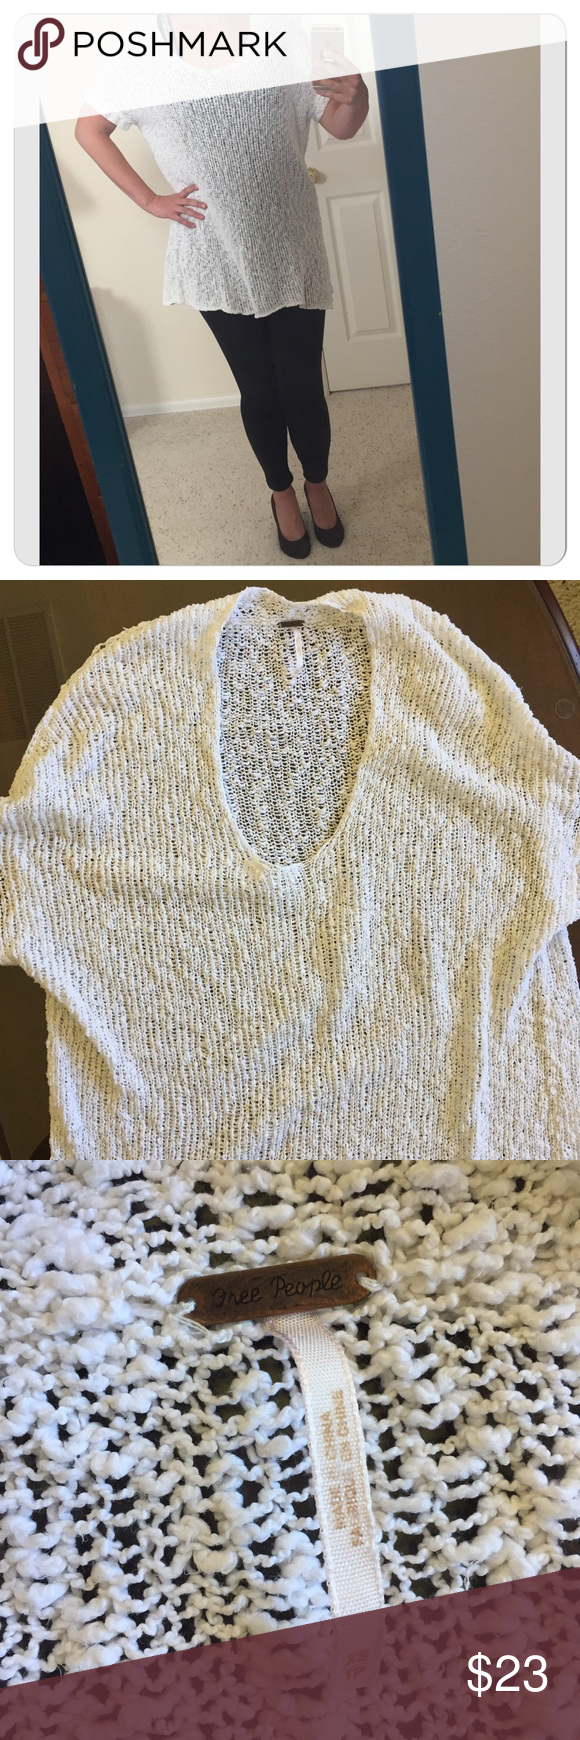 """Free people loose sweater. Fancy Free People loose oversized knit sweater. 90% cotton, 10% nylon. Size XS, but fits size S and M.  • Chest (pit to pit) 23"""" • Sleeve hem (lying flat) 6 1/2"""" (picture 8) • Length about 30"""" In very good condition. Free People Sweaters Crew & Scoop Necks"""